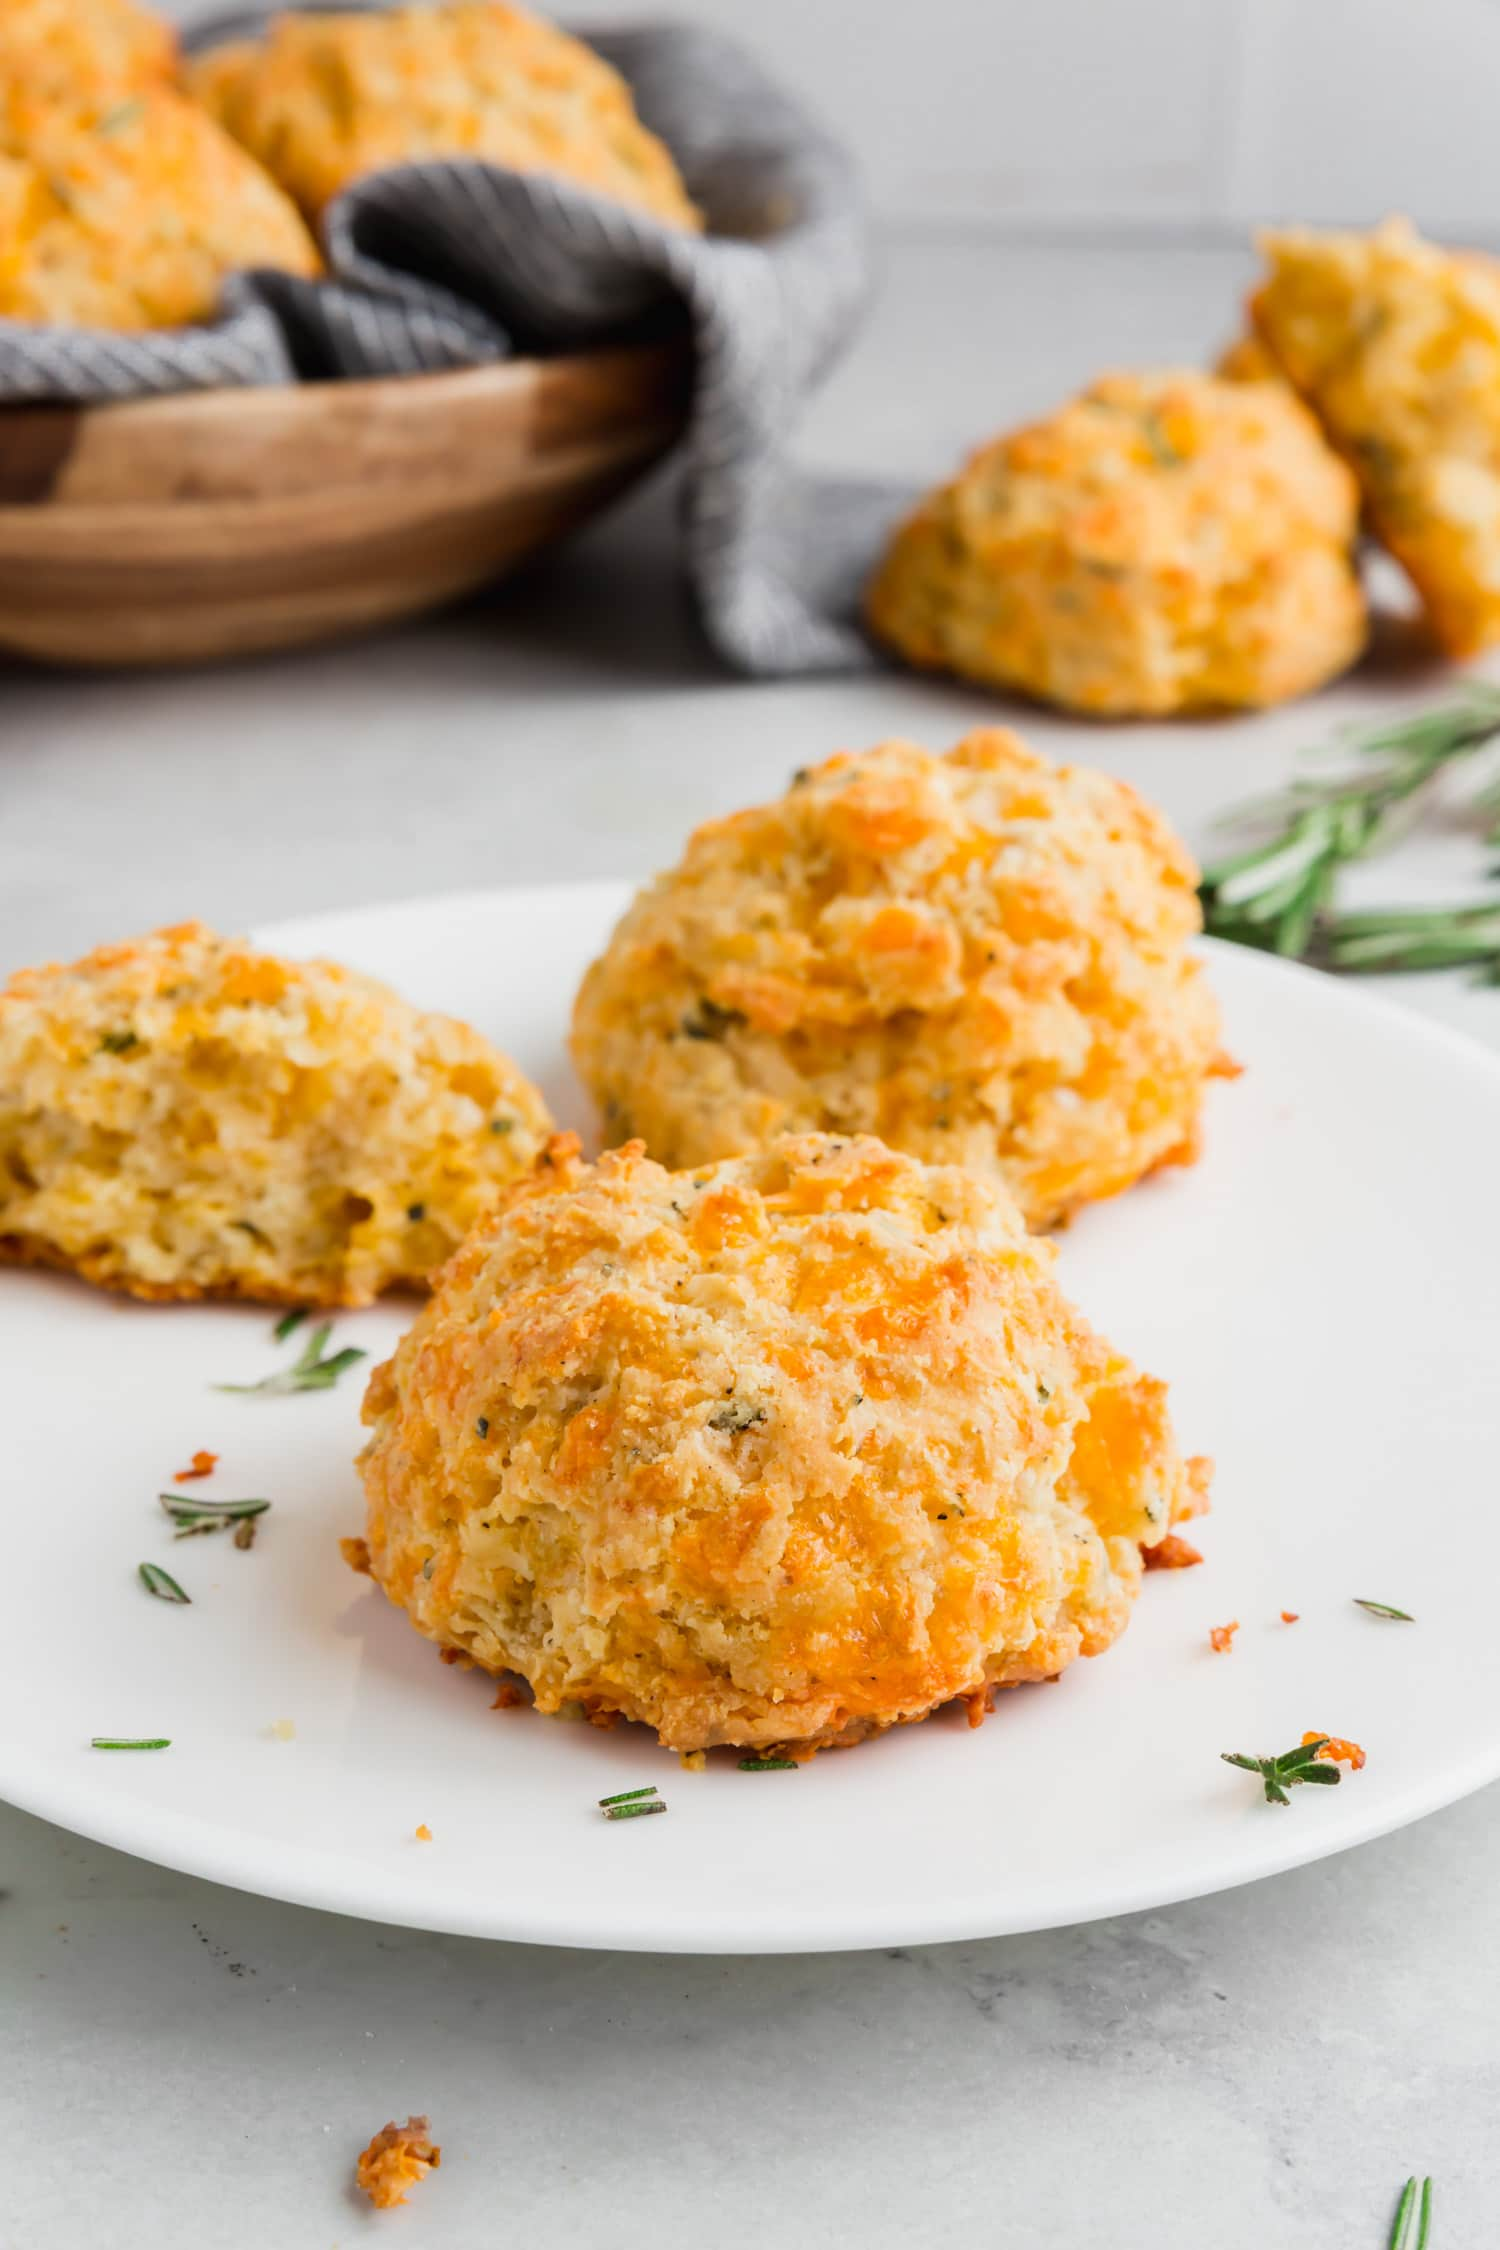 A photo of gluten-free cheese biscuits on a plate with fresh rosemary and a basket of biscuits in the background.